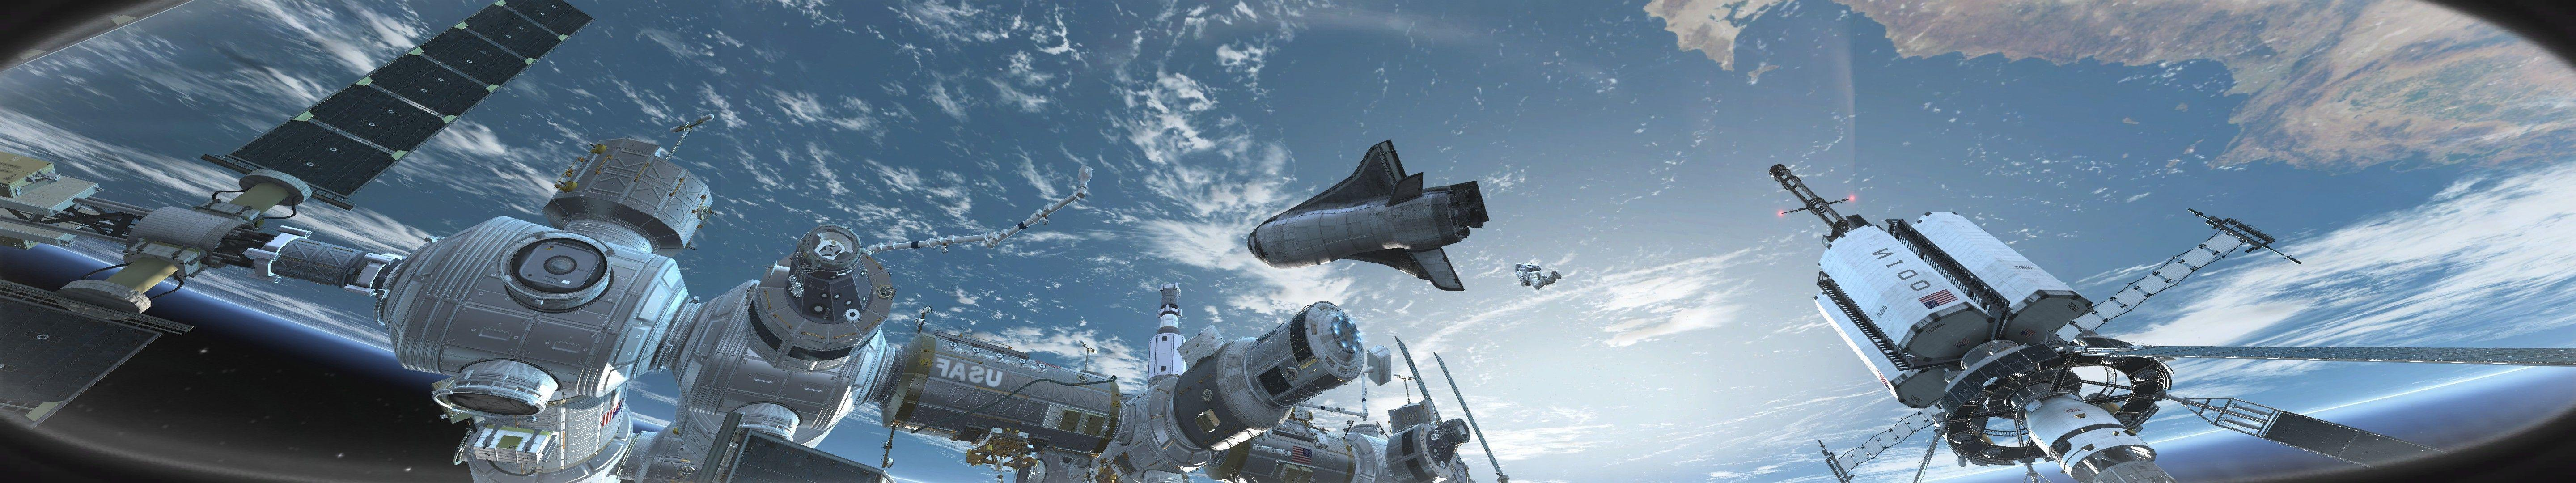 Call Of Duty: Ghosts, Space, Video Games Wallpapers HD / Desktop